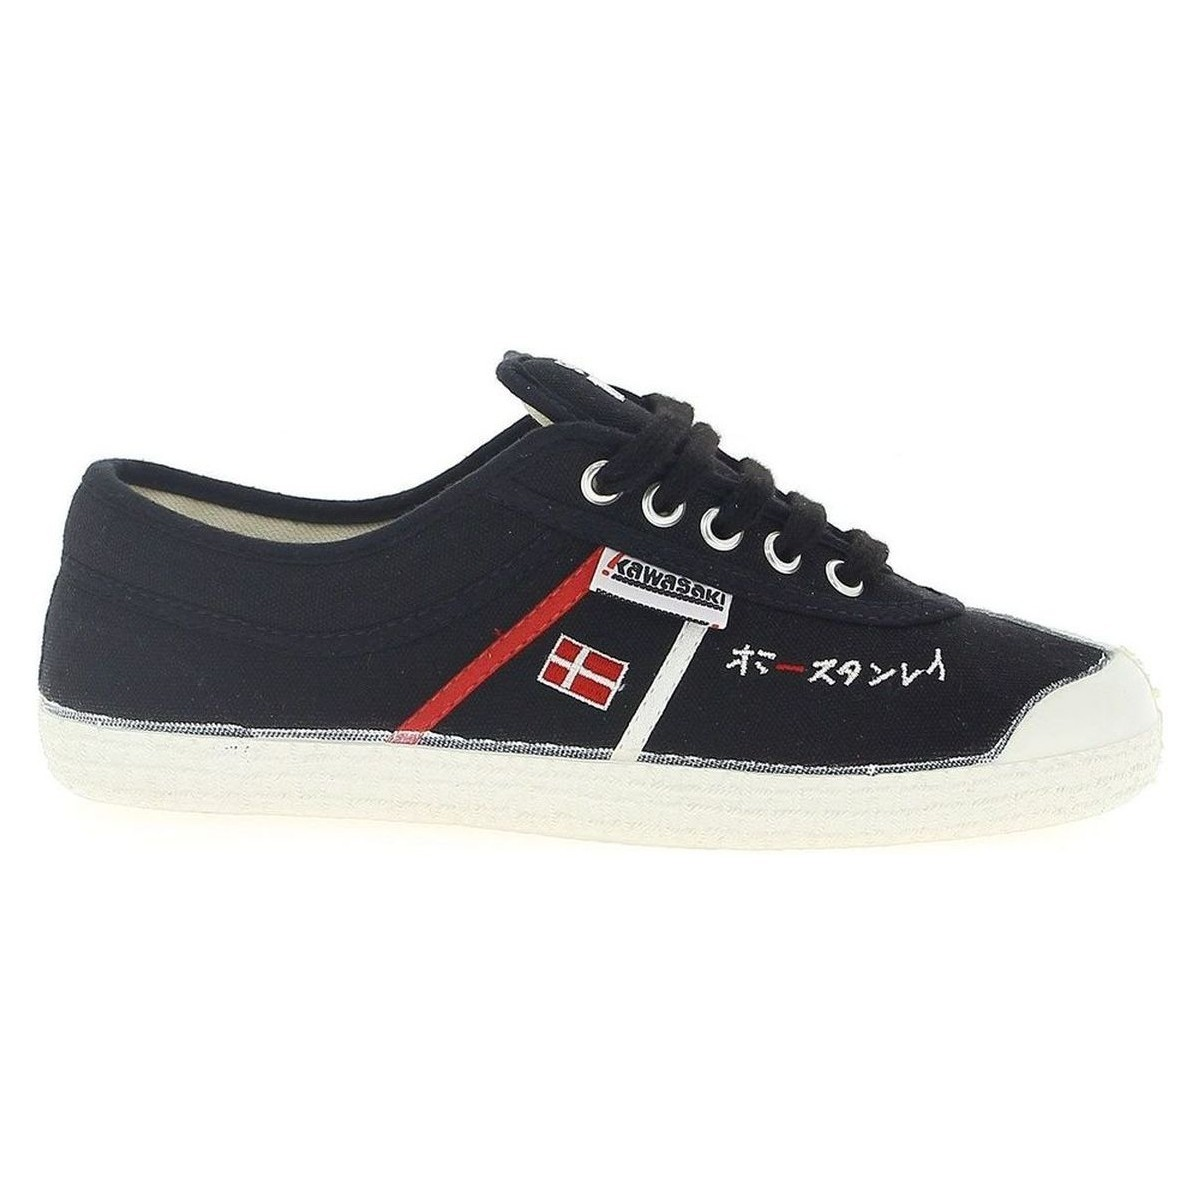 Kawasaki Zapatillas  Players Limited Edition 1972 Schwarz - Schuhe Sneaker Low  27,98 €